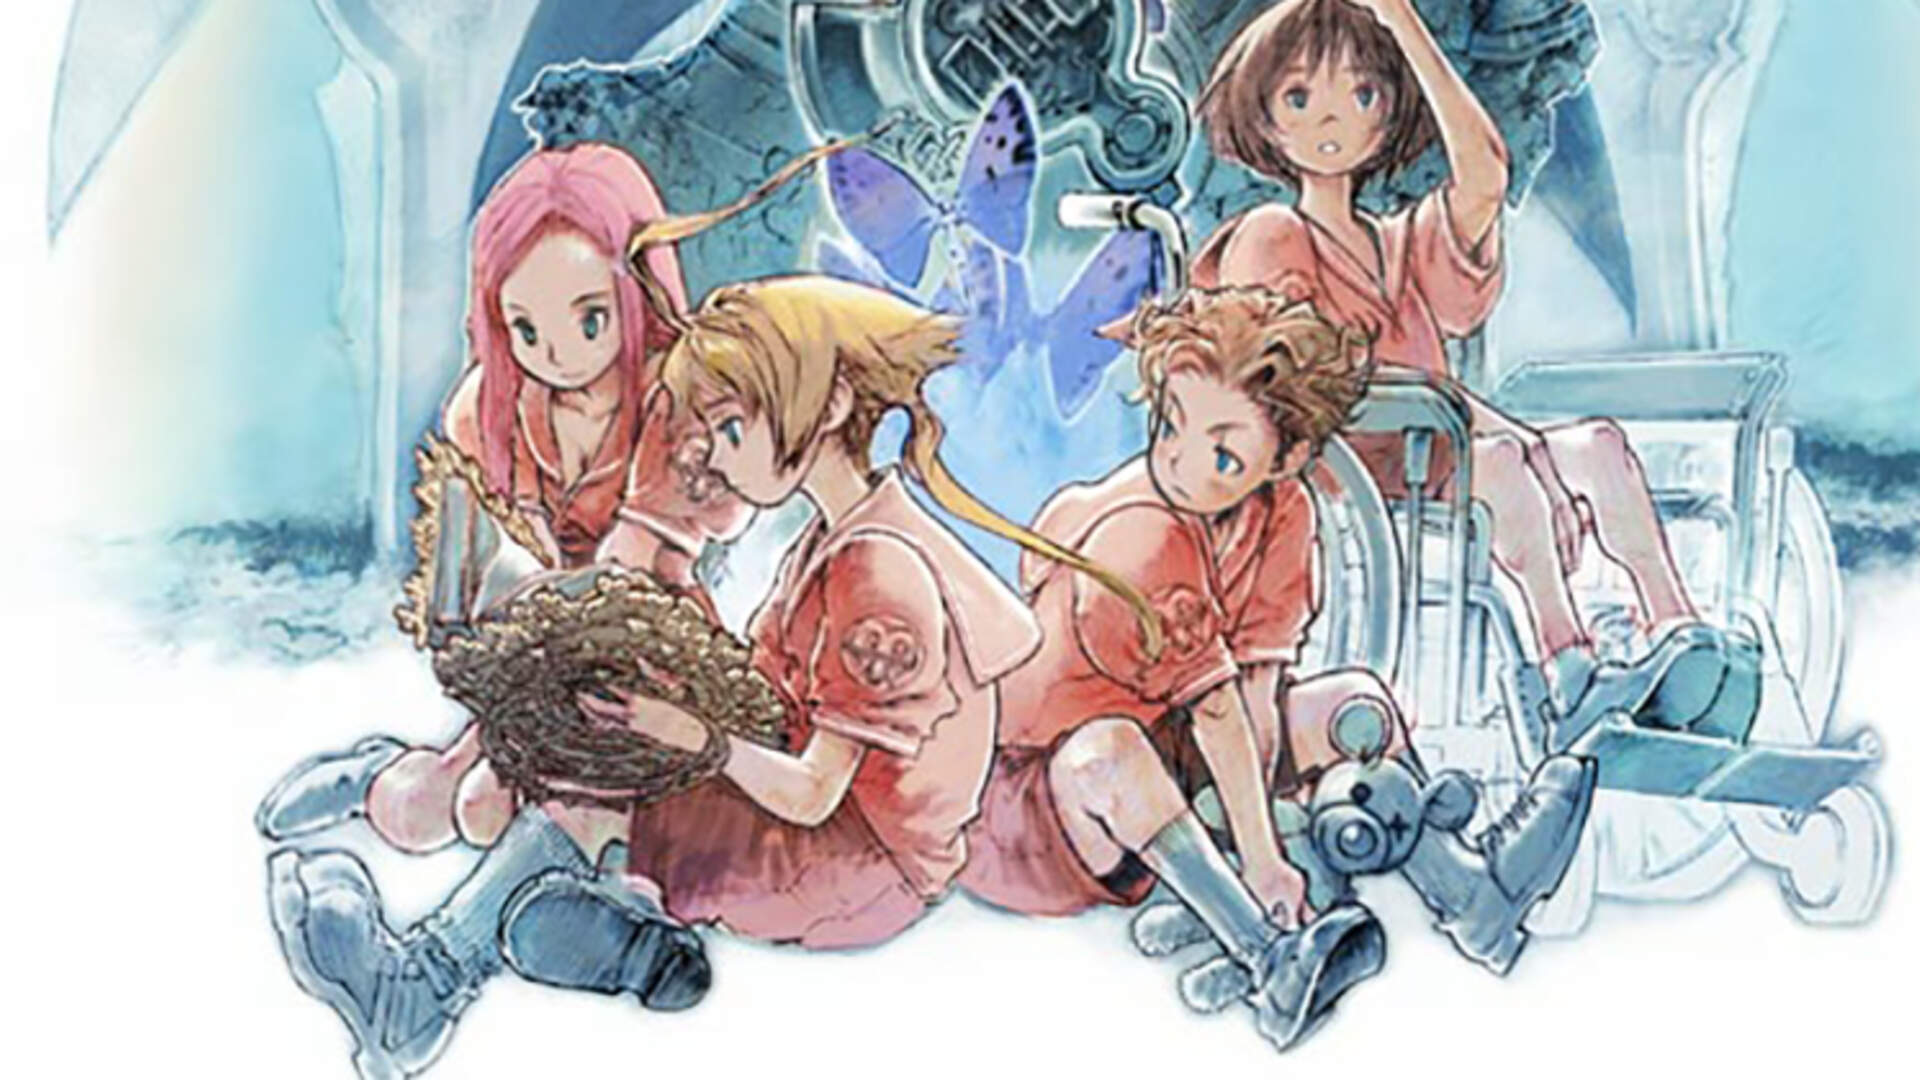 A Pair of Old-School Portable JRPGs Are Making Their Way to PSN and Wii U